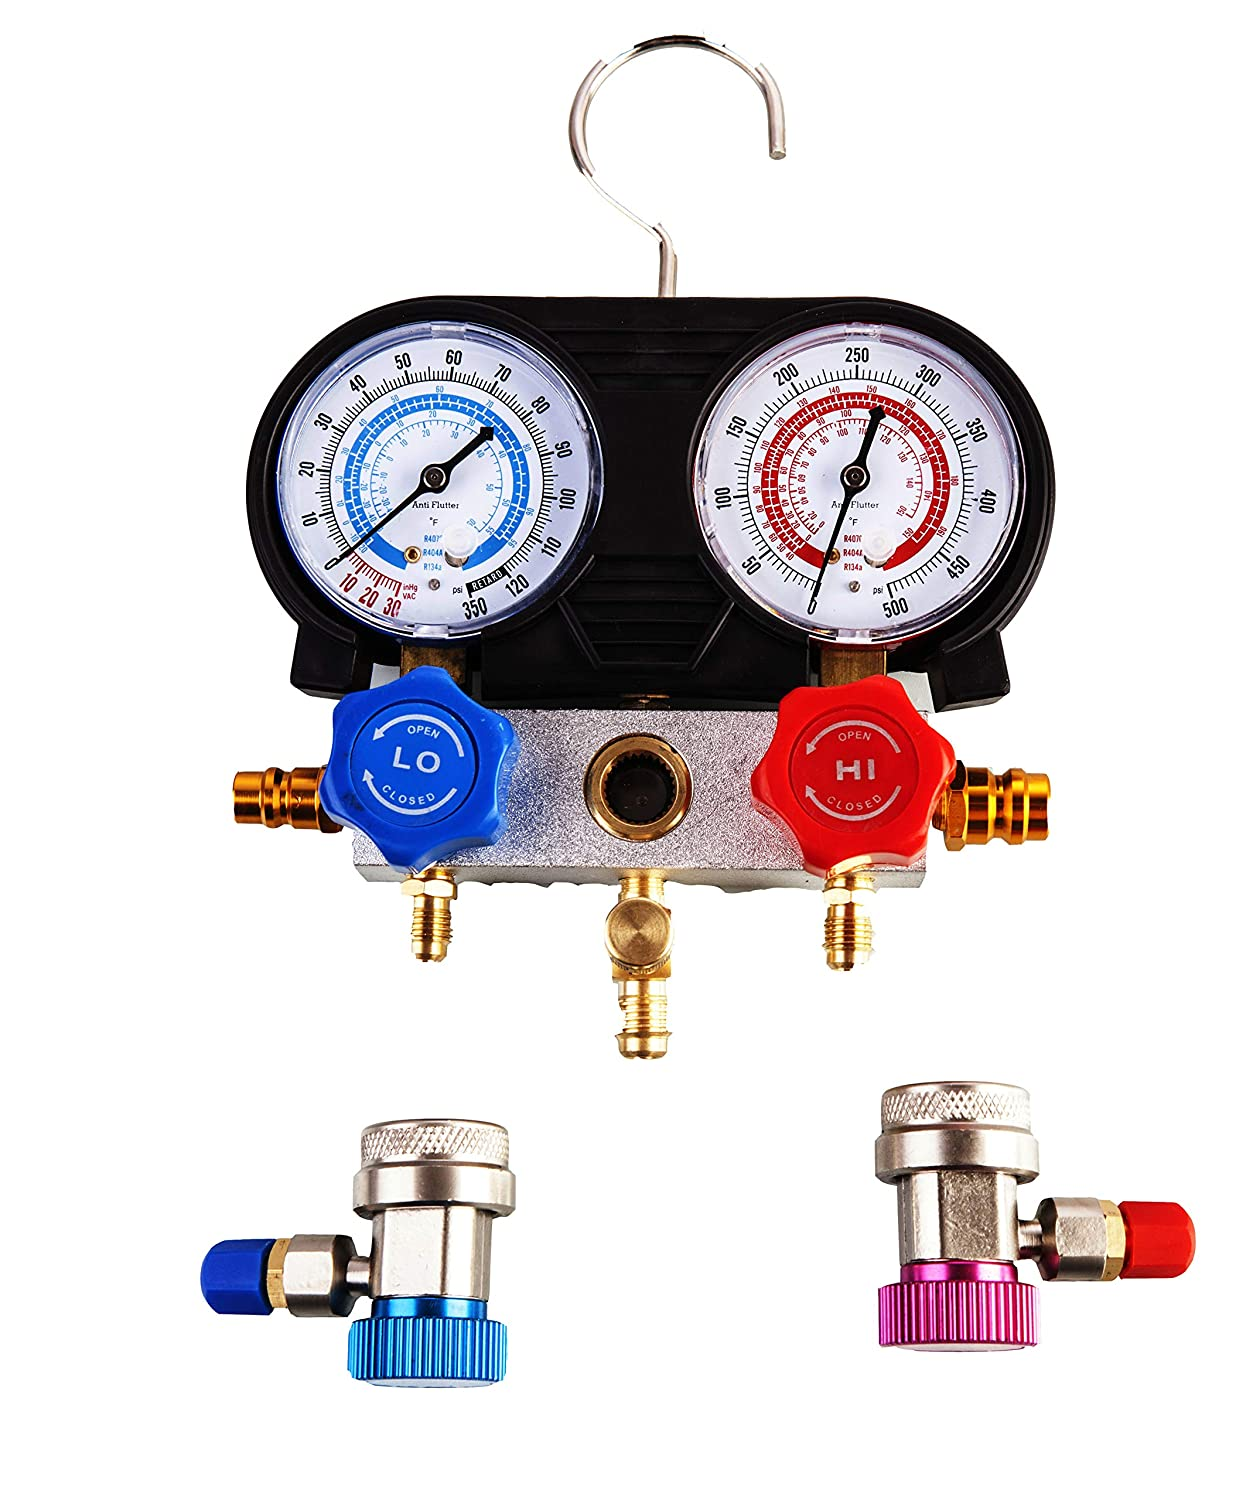 Aain LX1002 (R) Brass Pro AC A/C Diagnostic Manifold Gauge Set For R134A  R12 R22 Refrigerants with Hoses & Couplers